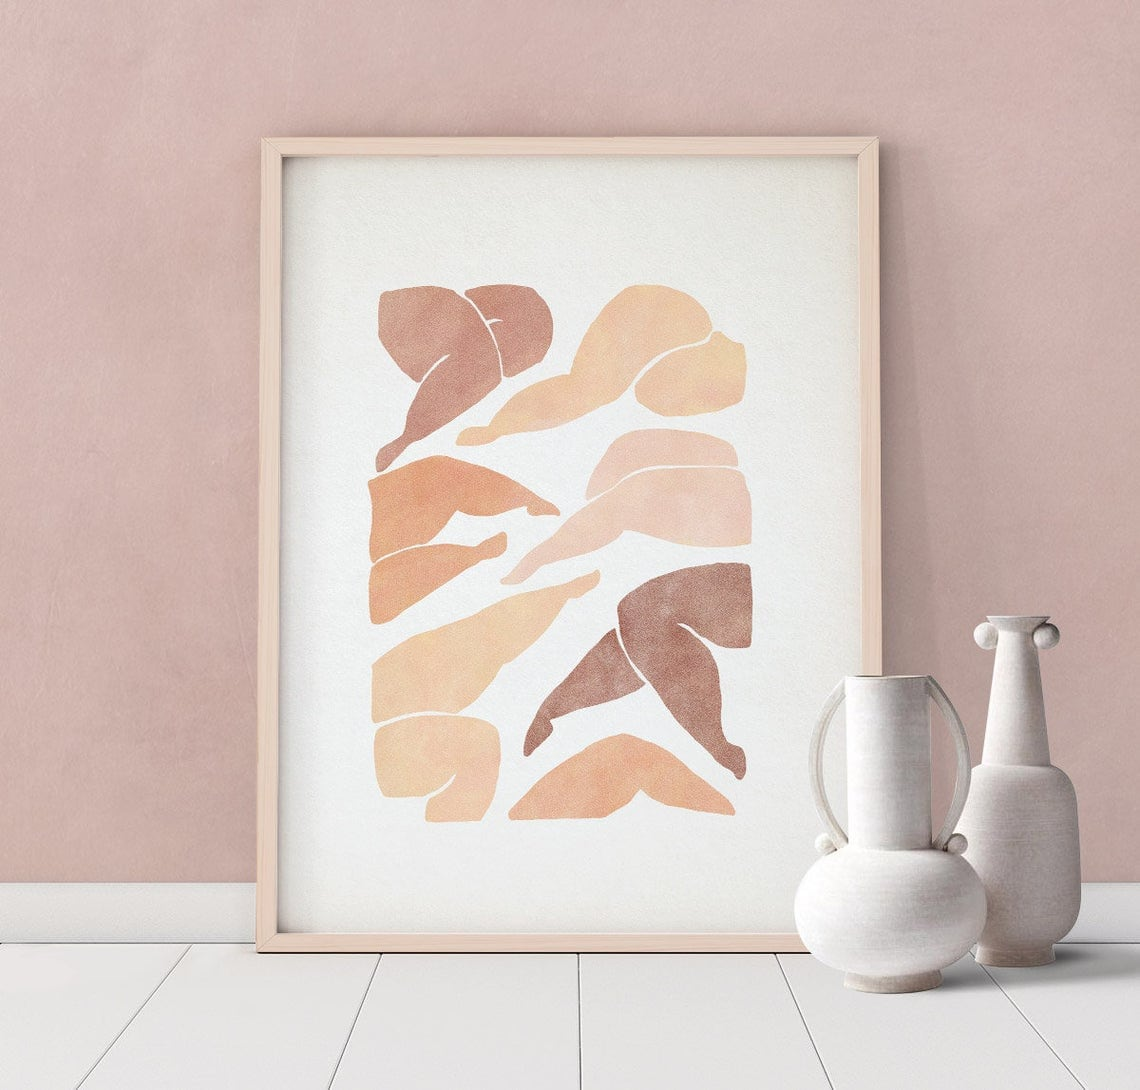 Downloadable woman figure print from forn Studio